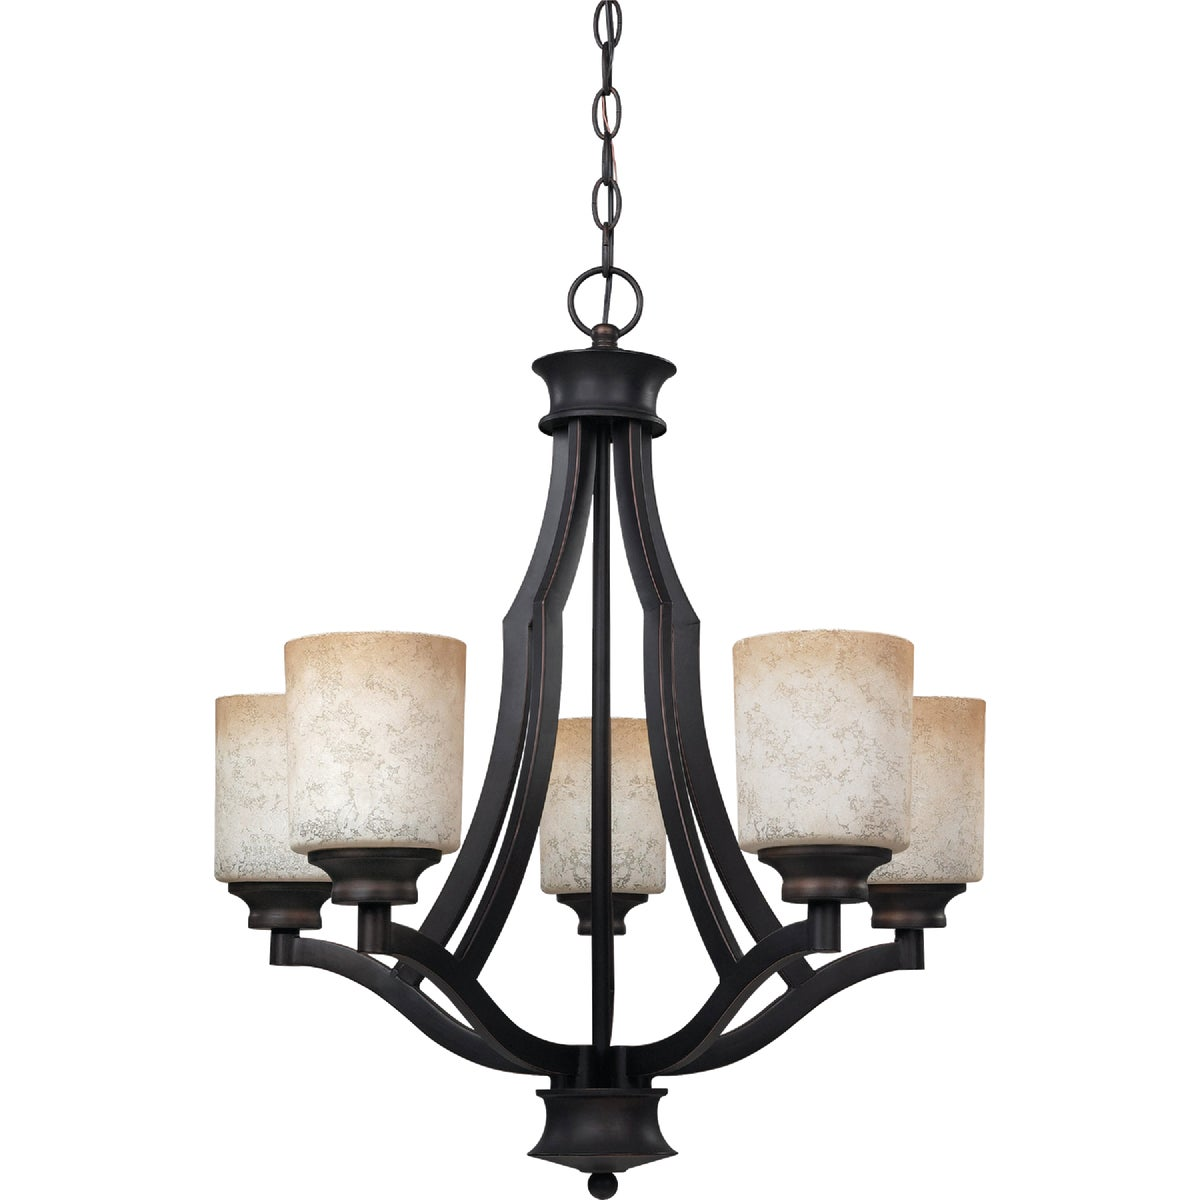 5BULB ANTIQUE CHANDELIER - ICH375A05RA by Canarm Gs